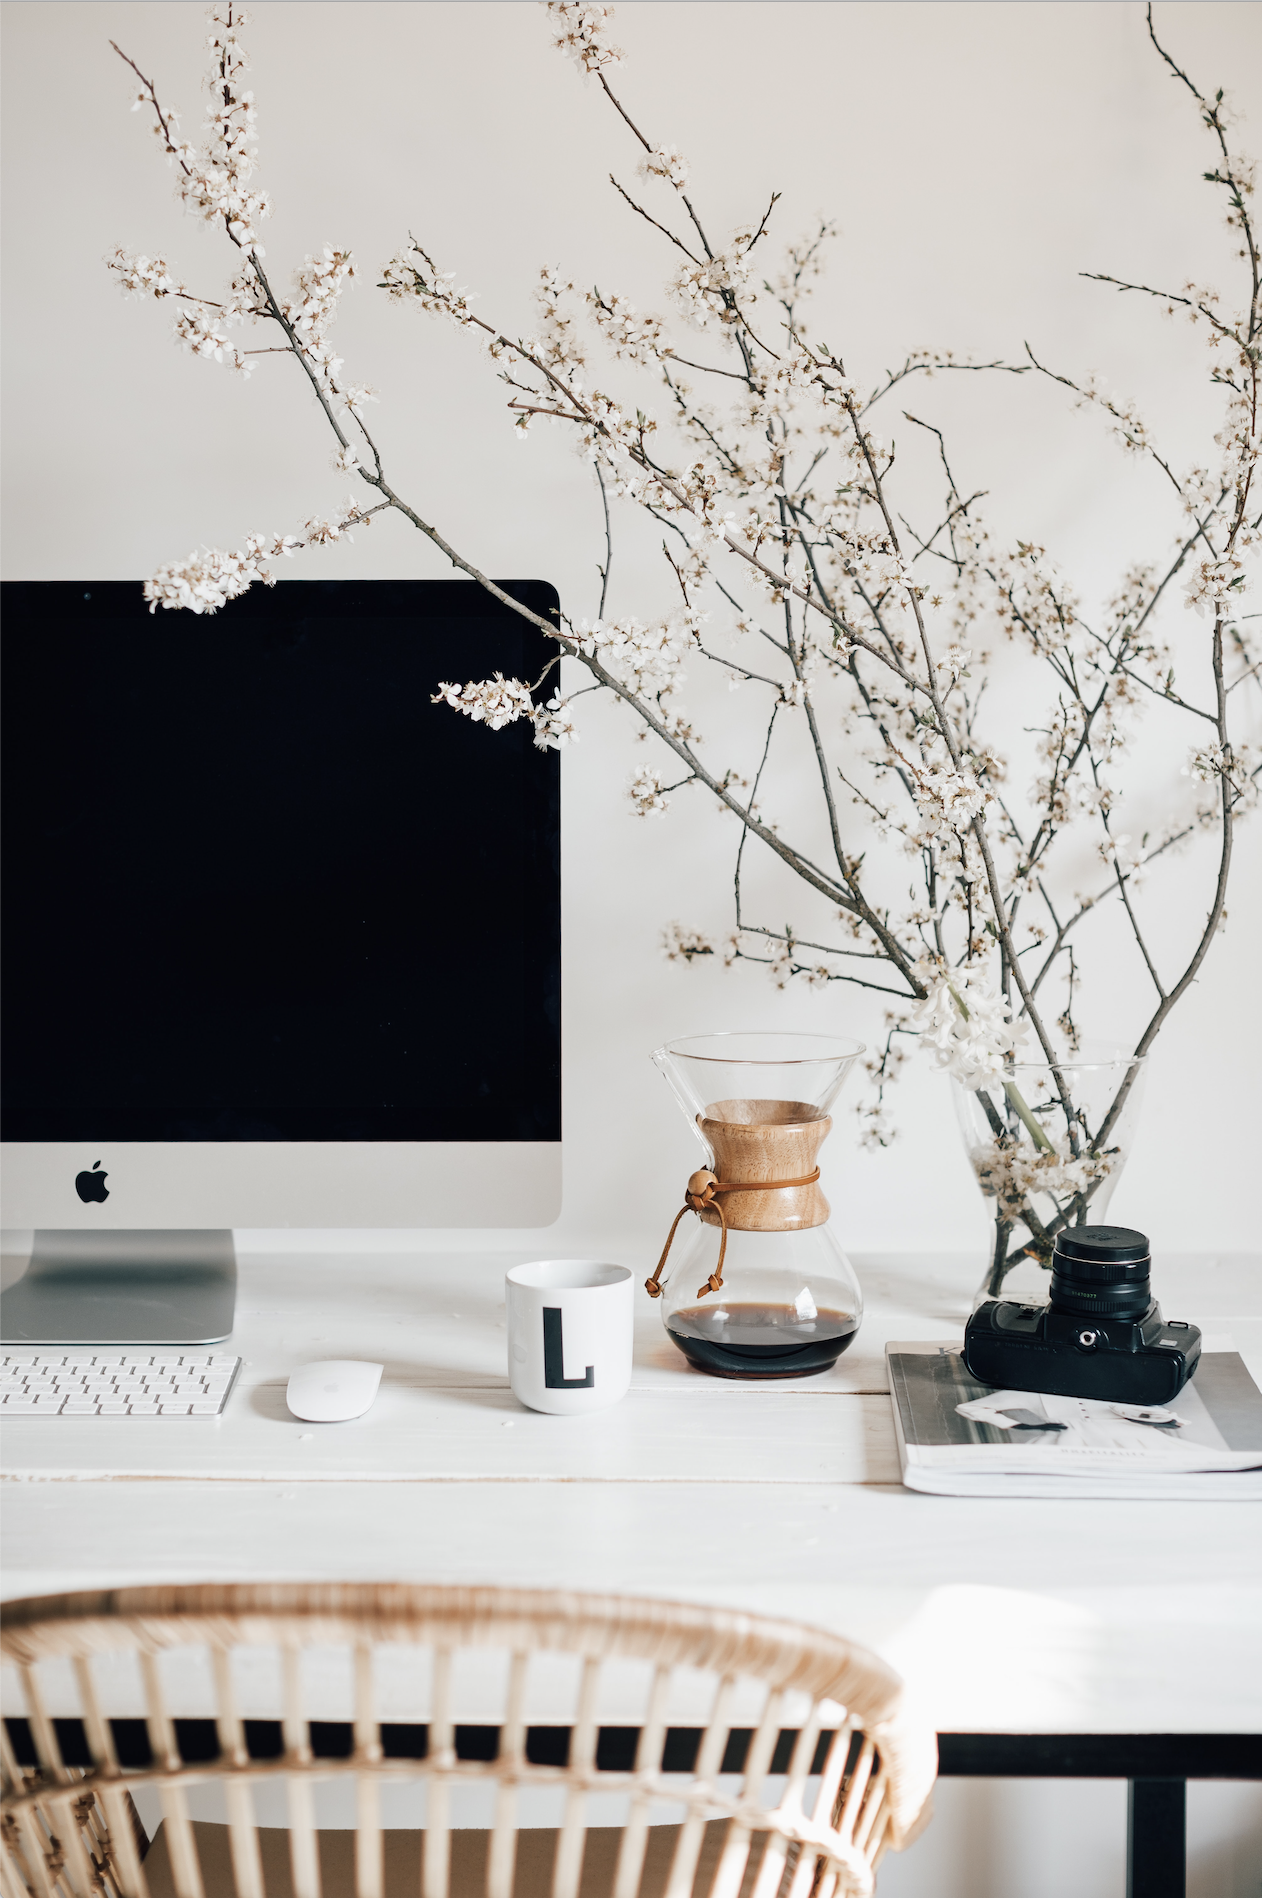 How to deduct expenses when you work from home